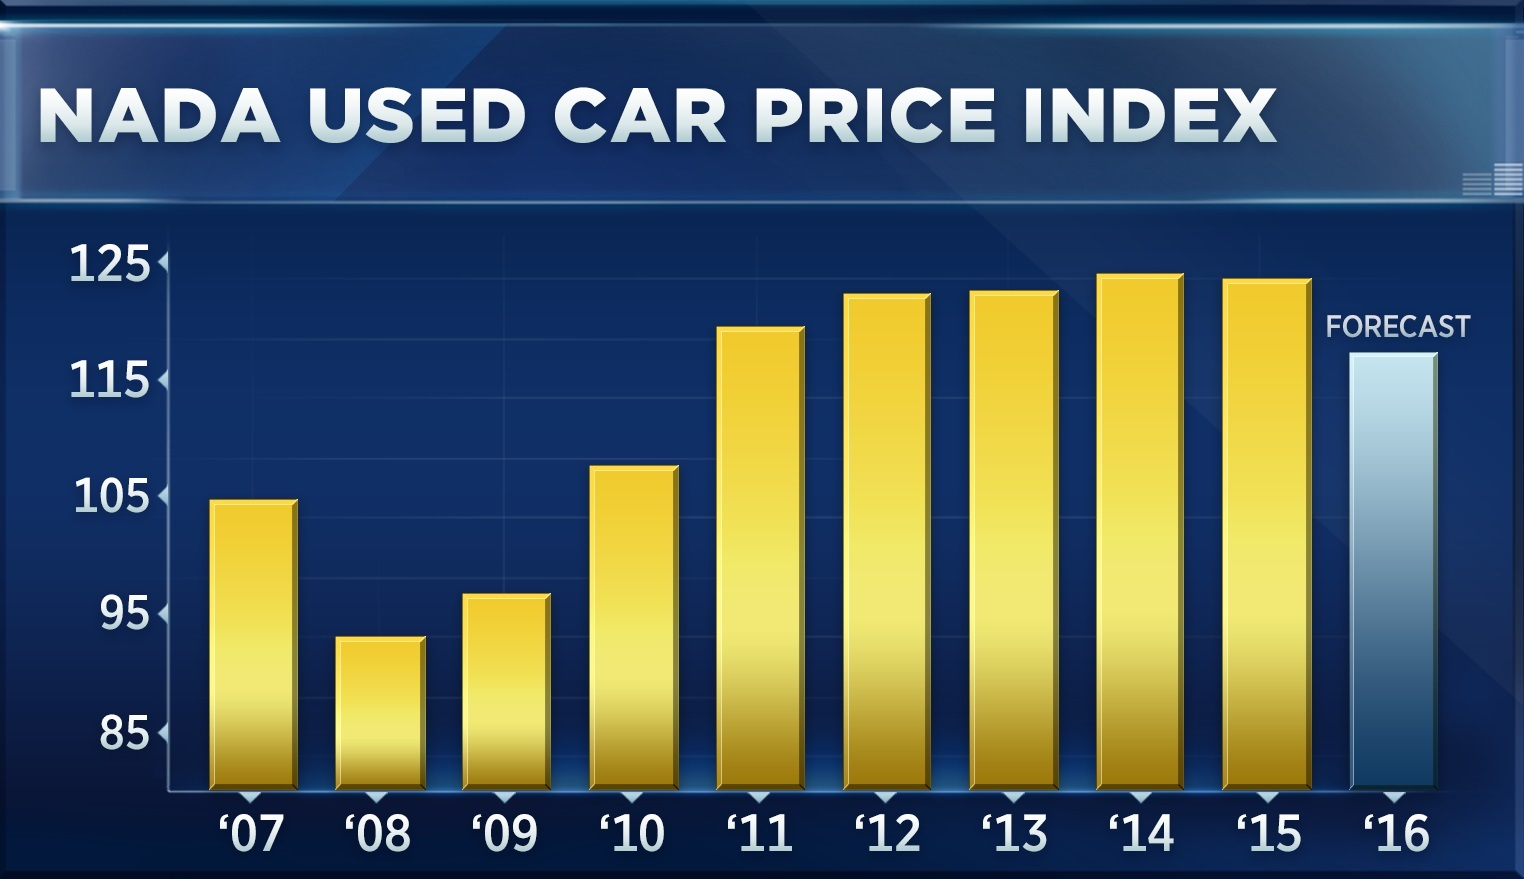 Its the first time since 2008 that prices of used cars are falling